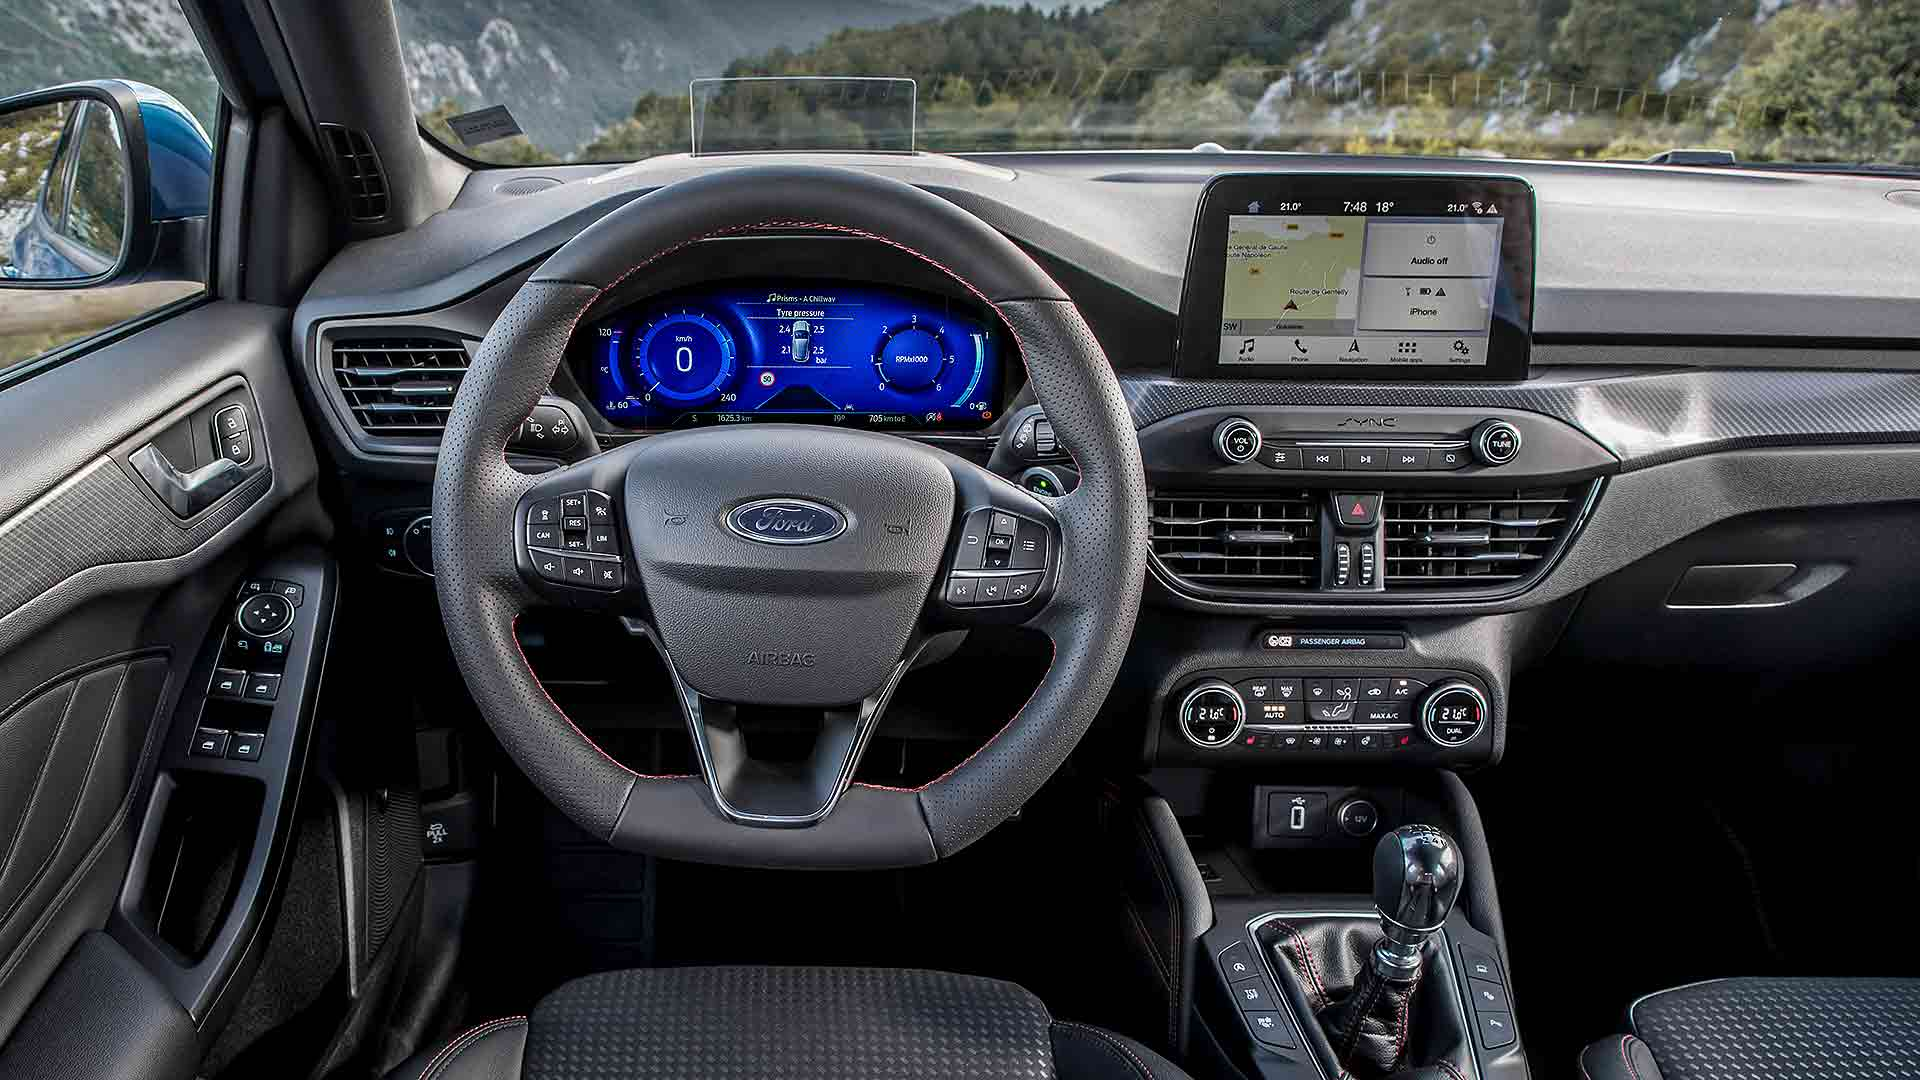 2020 Ford Focus interior with new digital cluster